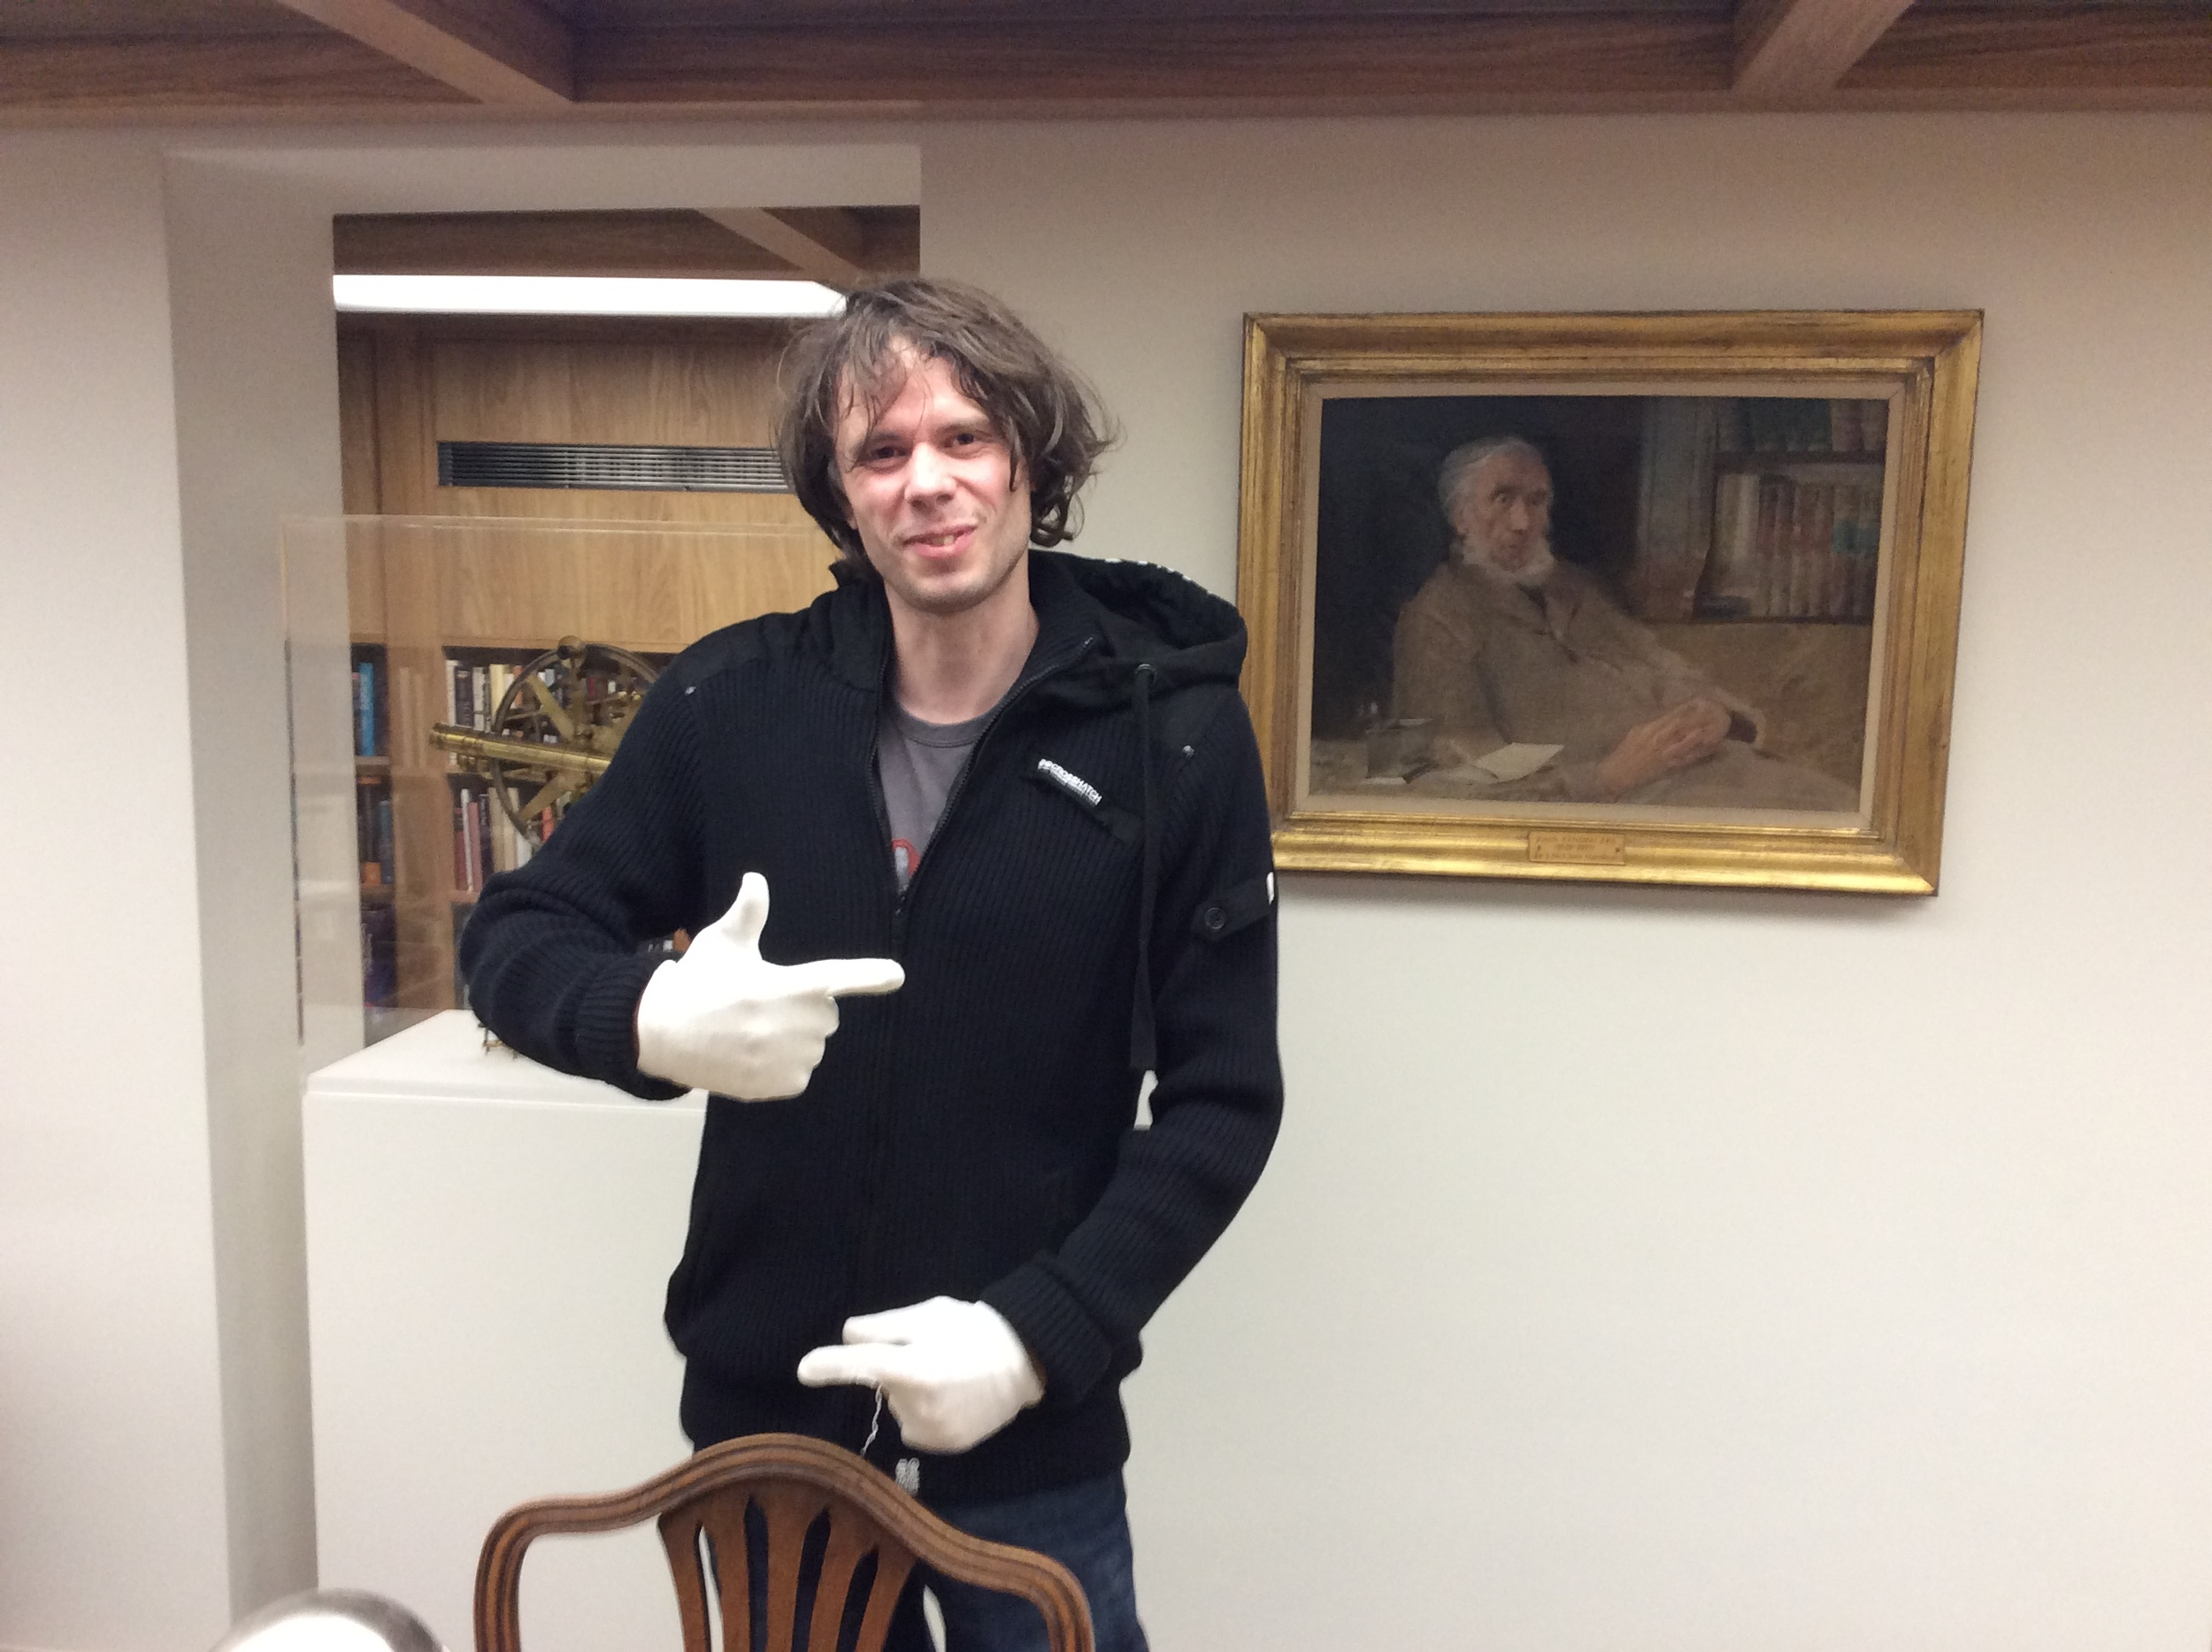 Aaron from Surrey checked out some of John Gould's birds.